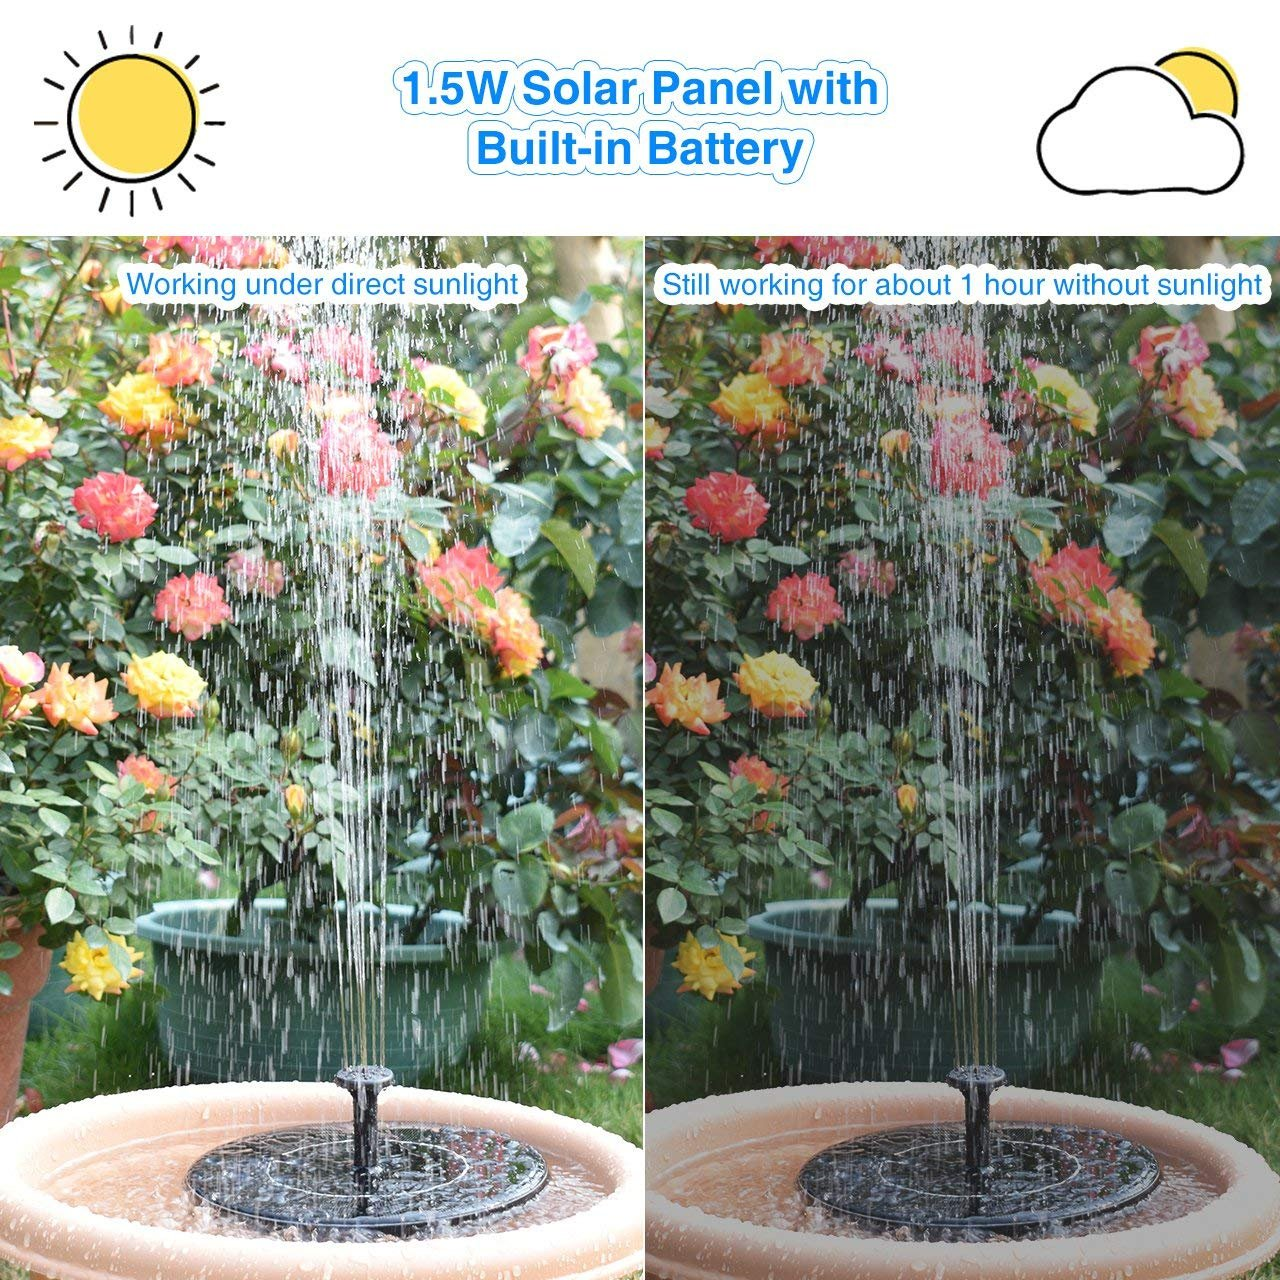 ROADTEC 1.5W Upgraded Solar Water Fountain Bird Bath Submersible Solar Water Pump Kit for Small Pond Garden